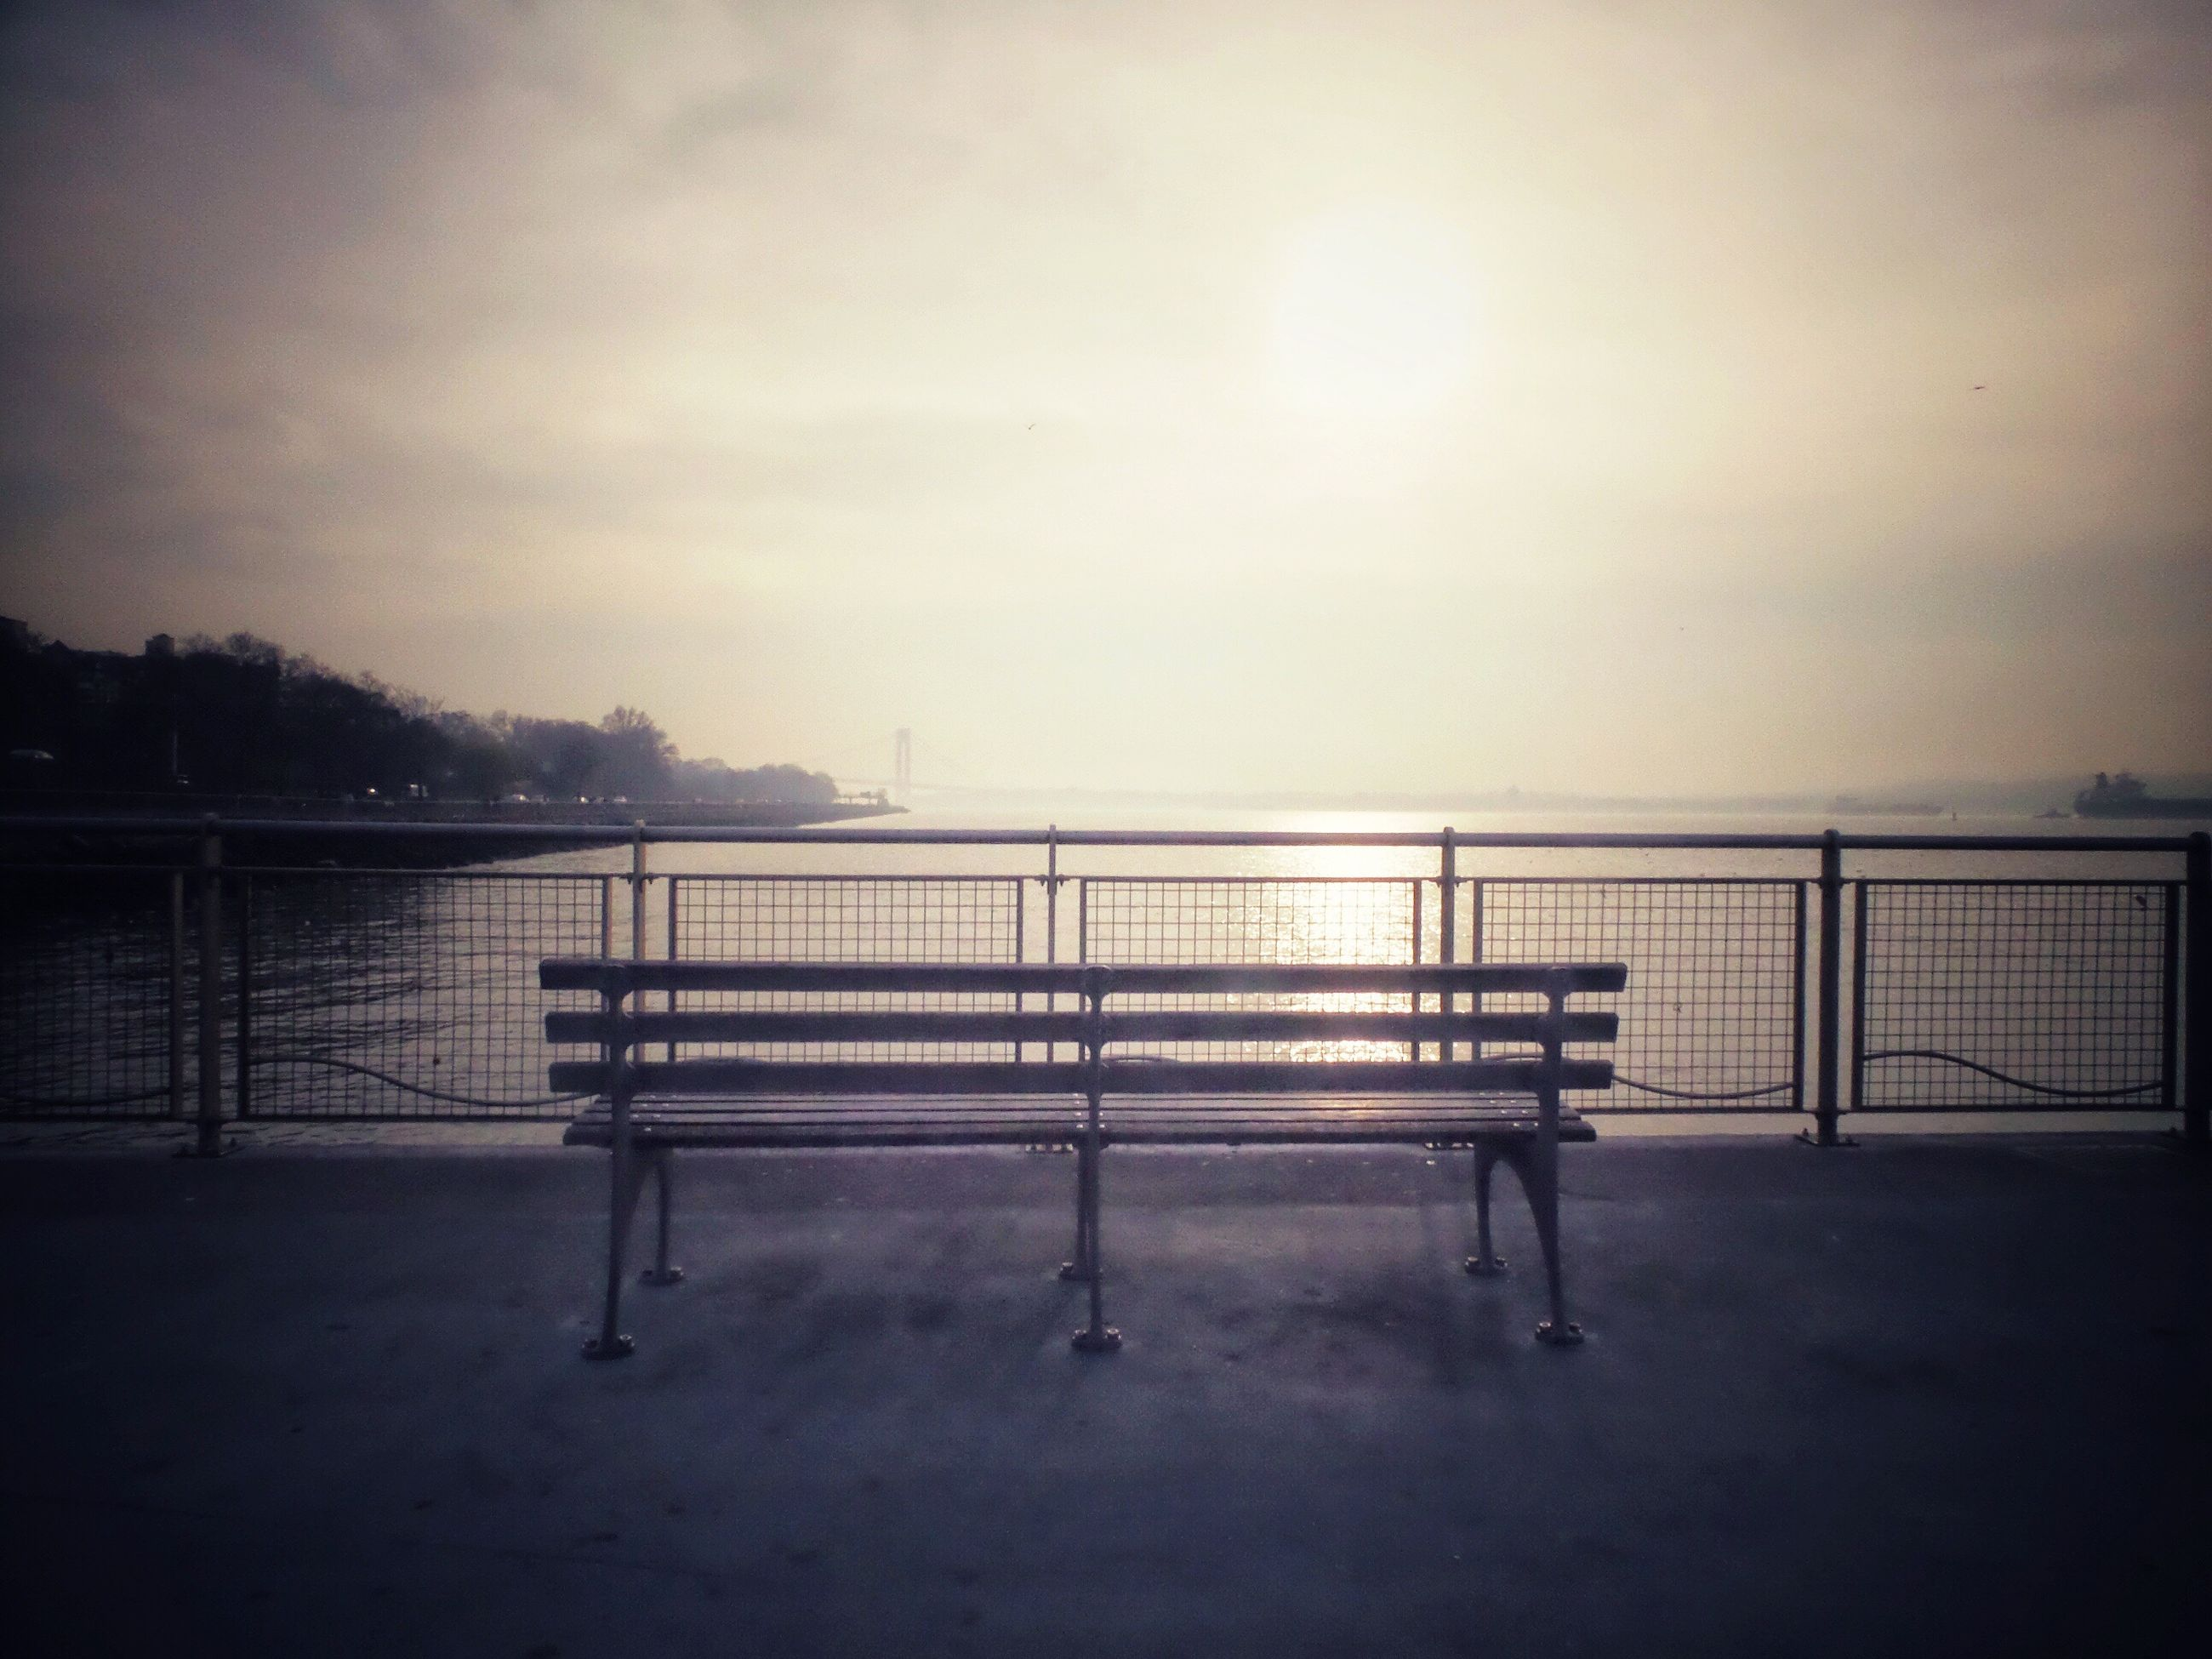 railing, tranquility, tranquil scene, bench, sky, water, empty, nature, scenics, silhouette, absence, beauty in nature, tree, pier, sunset, lake, fence, no people, idyllic, outdoors